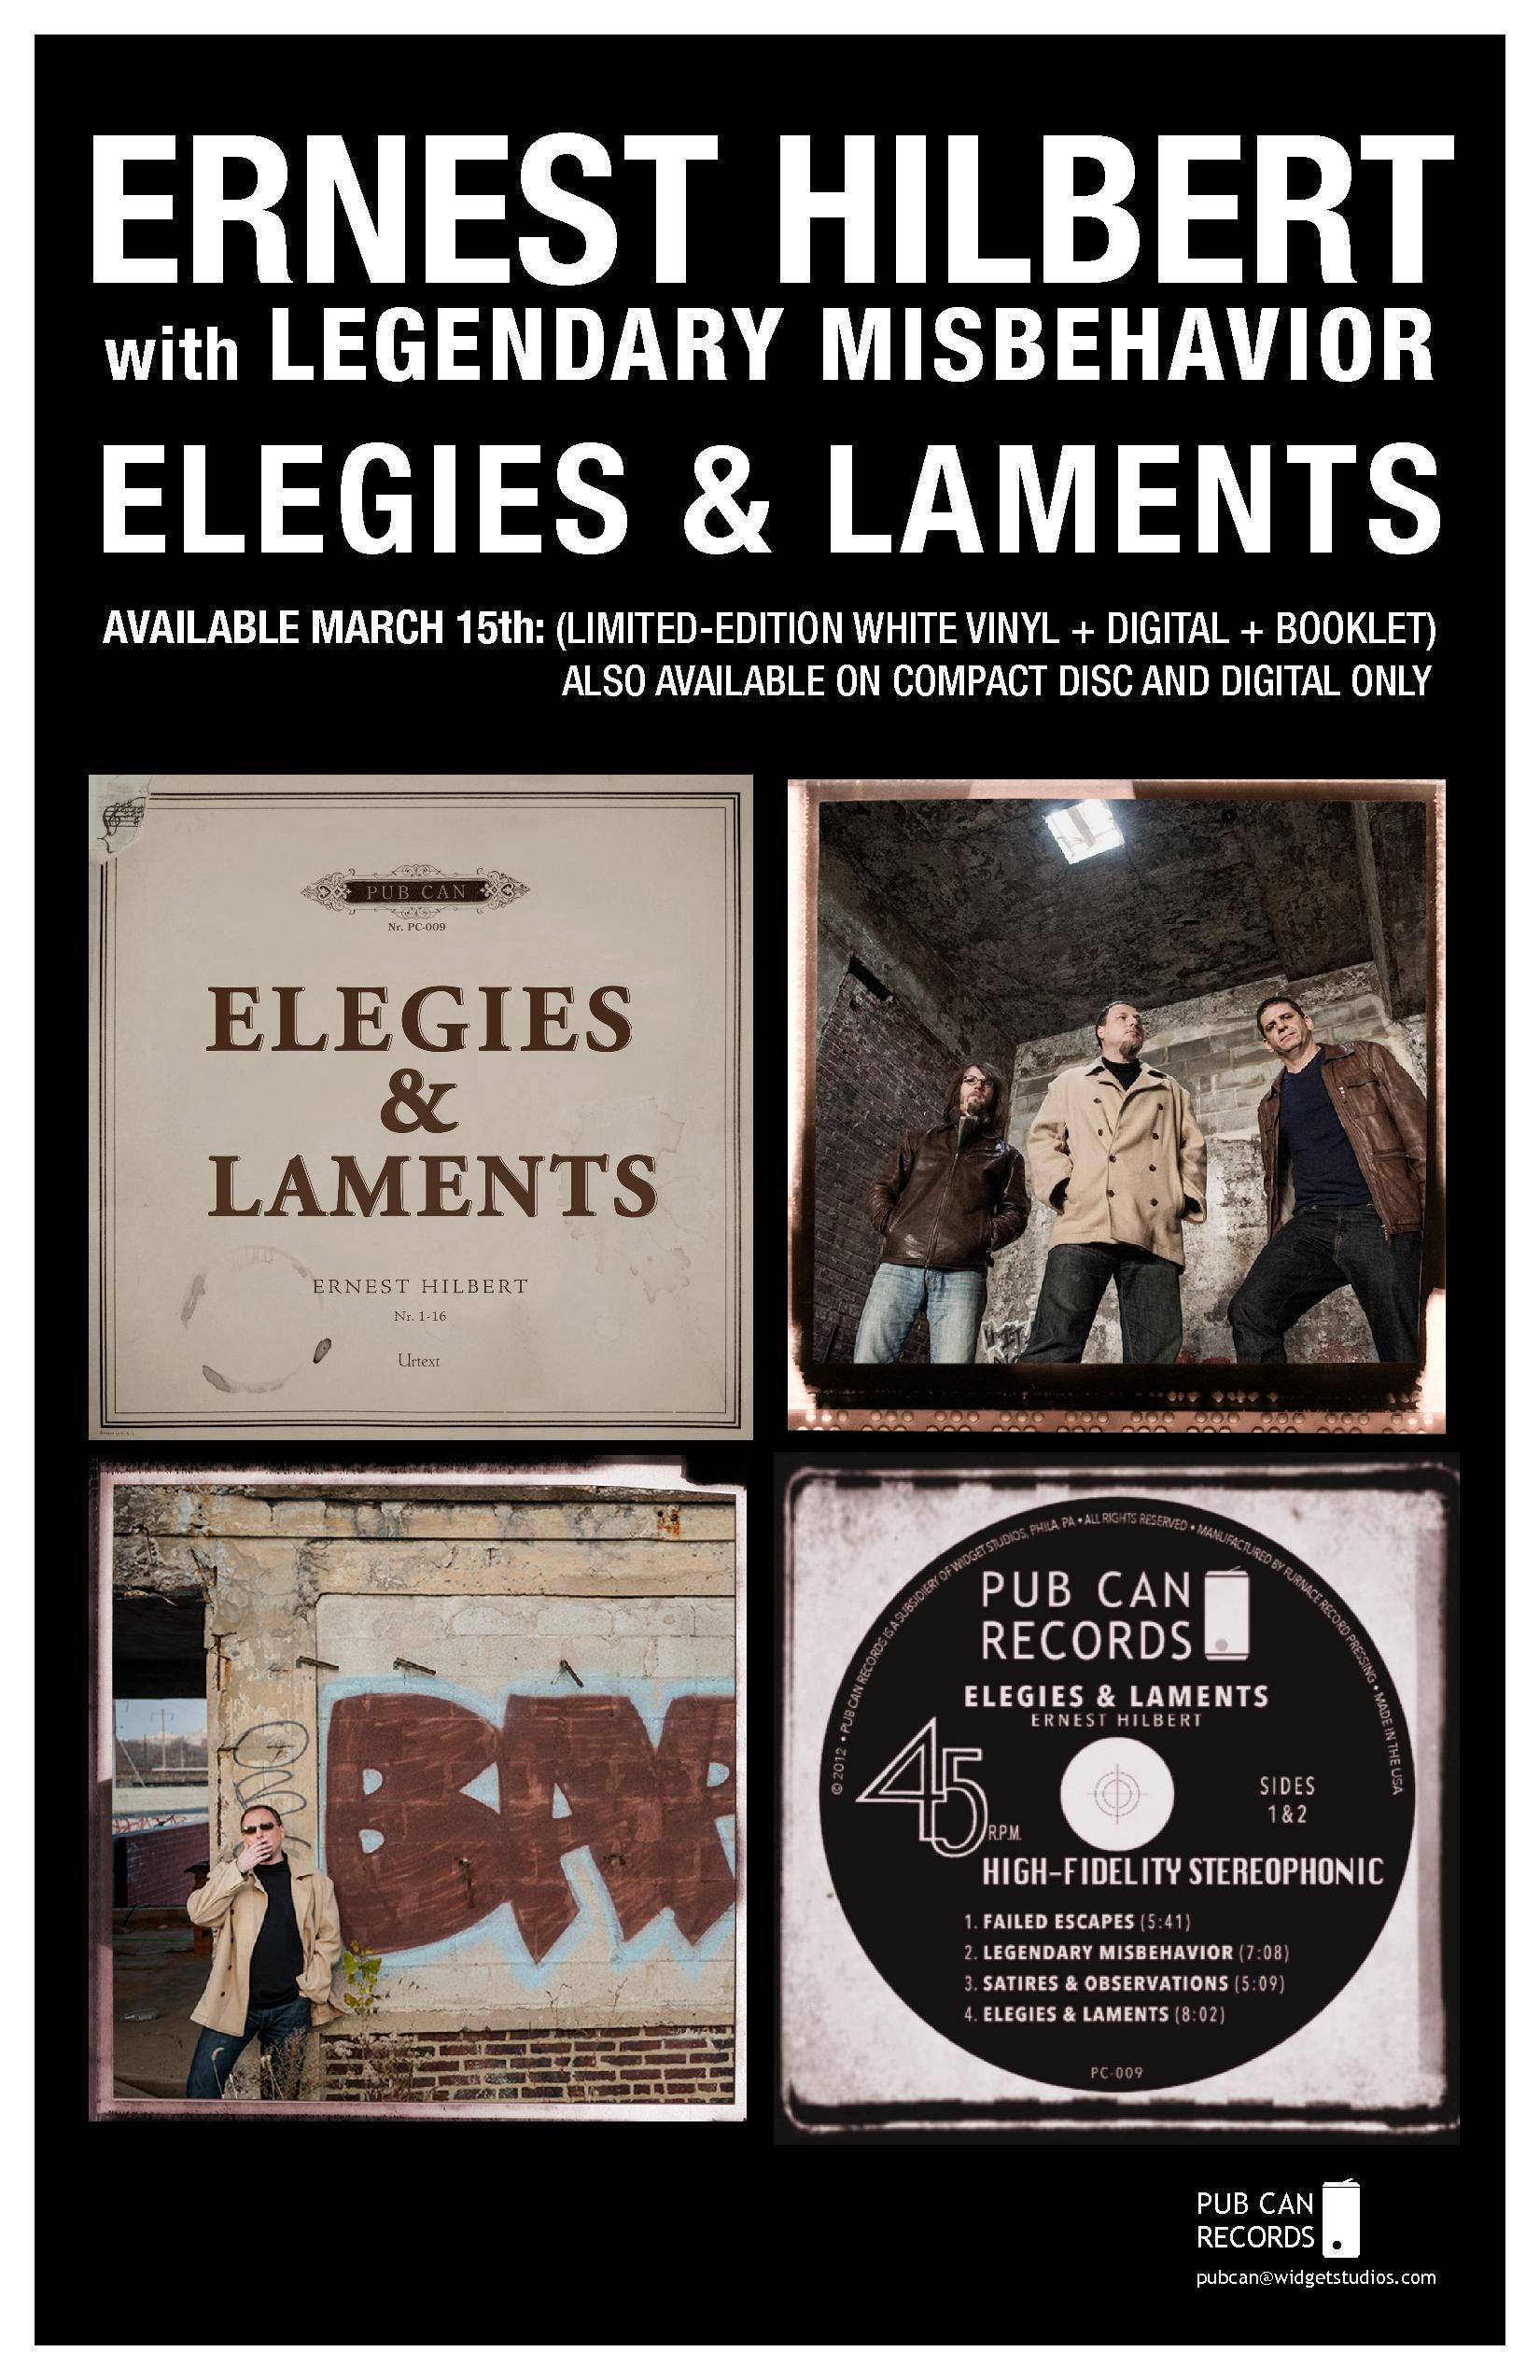 Record Poster Final LIMITED-EDITION POSTER ADVERTISING